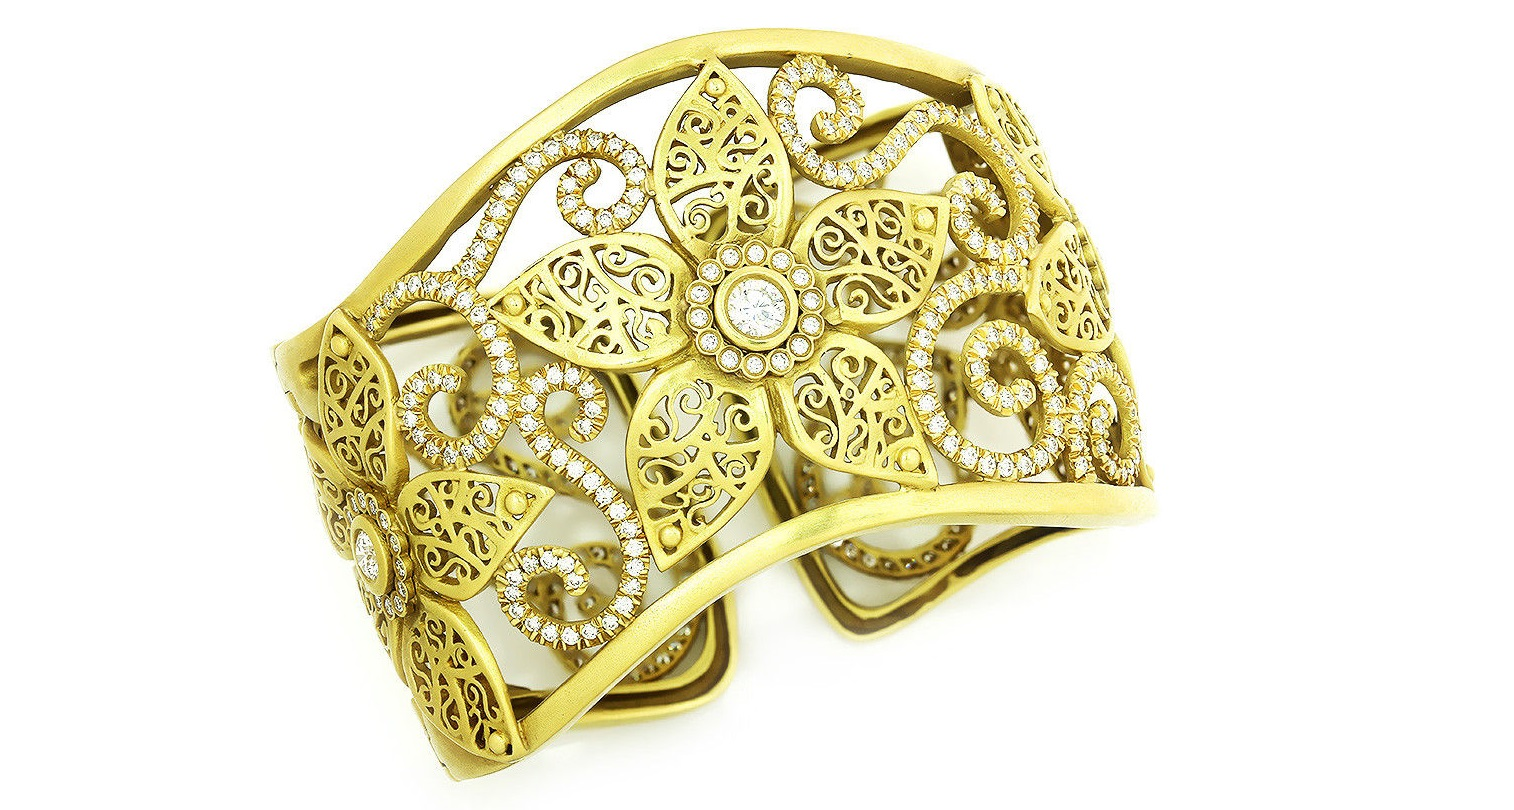 Kieselstein-Cord Diamond Flower Cuff Bracelet 18K Yellow Gold 5.85ctw